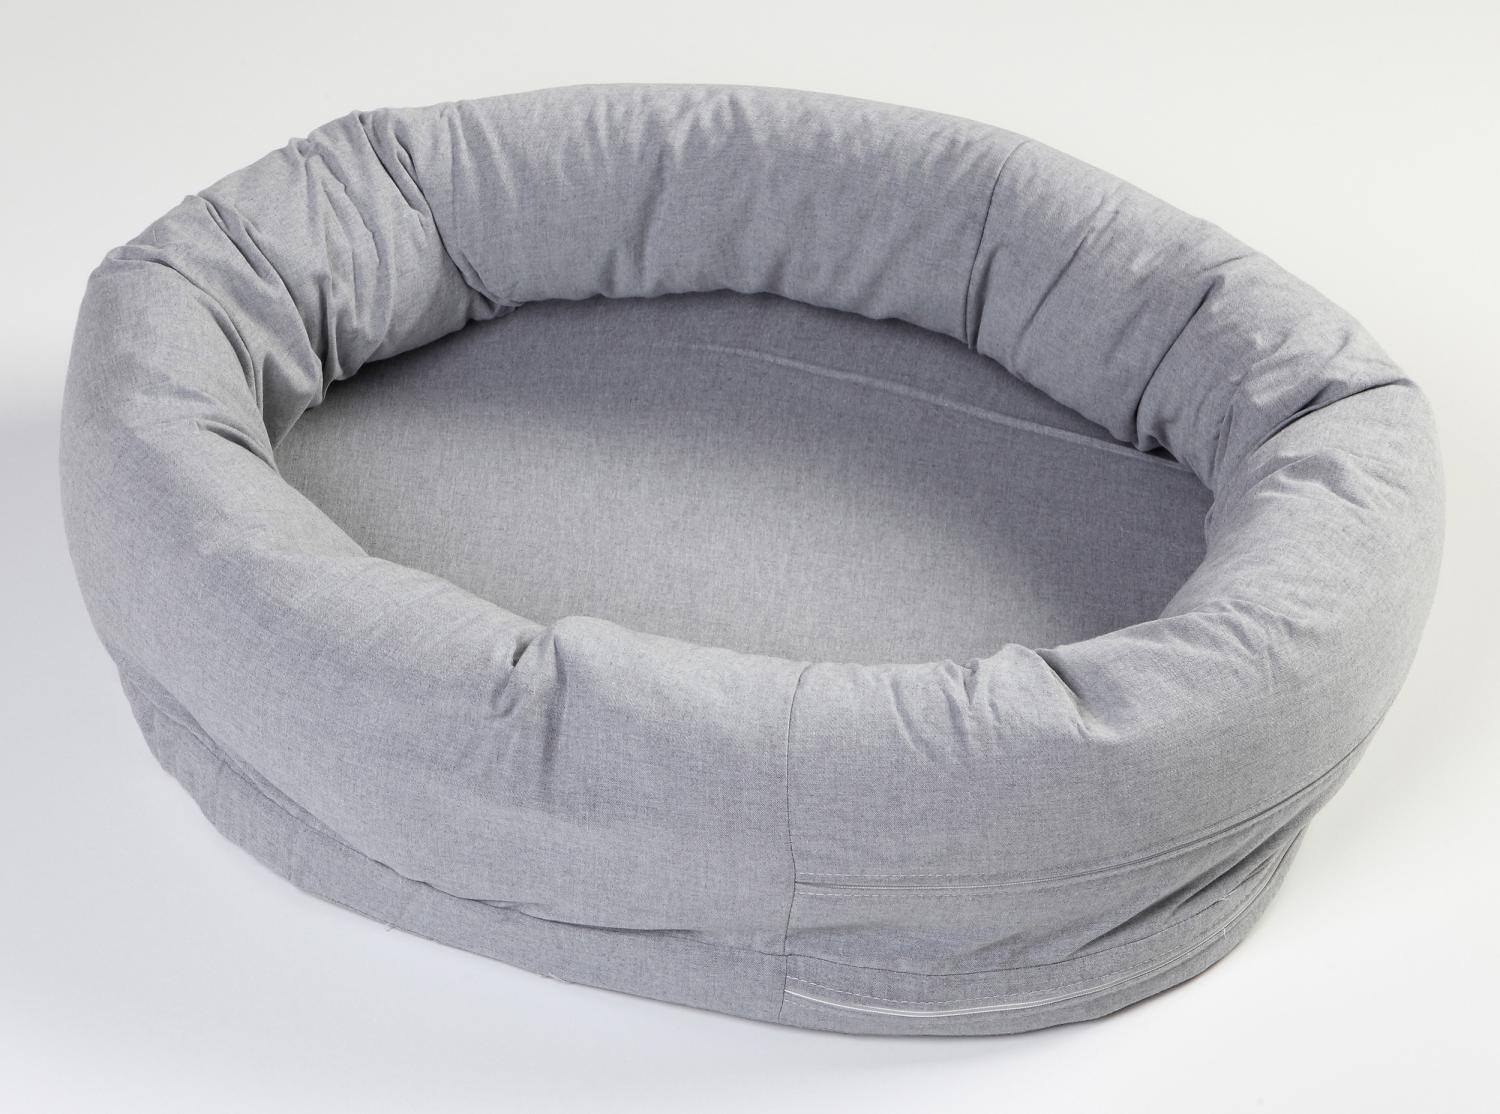 Sleep nest | Grey | Basic